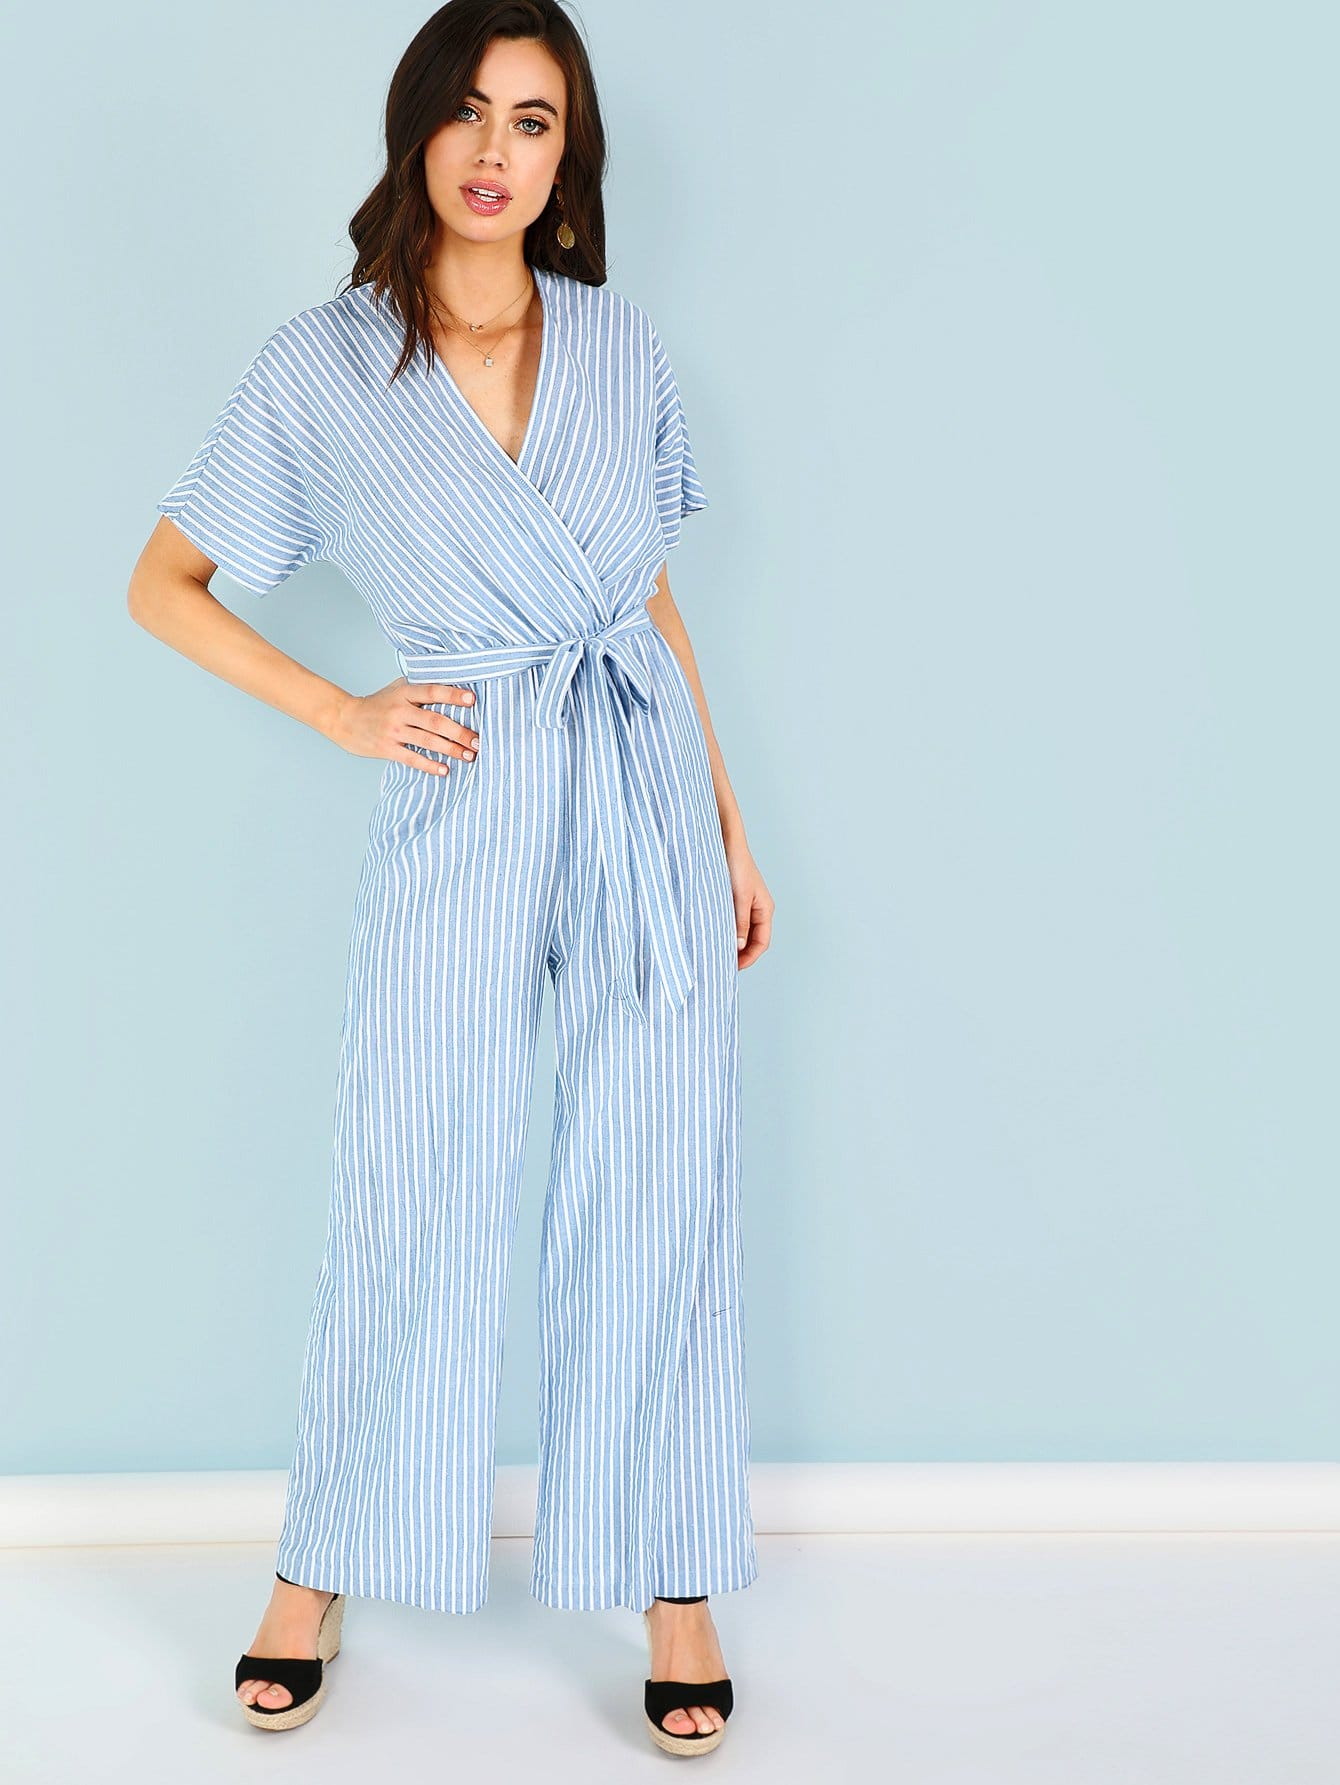 Surplice Neck Self Belted Striped Jumpsuit surplice neckline self tie cami jumpsuit